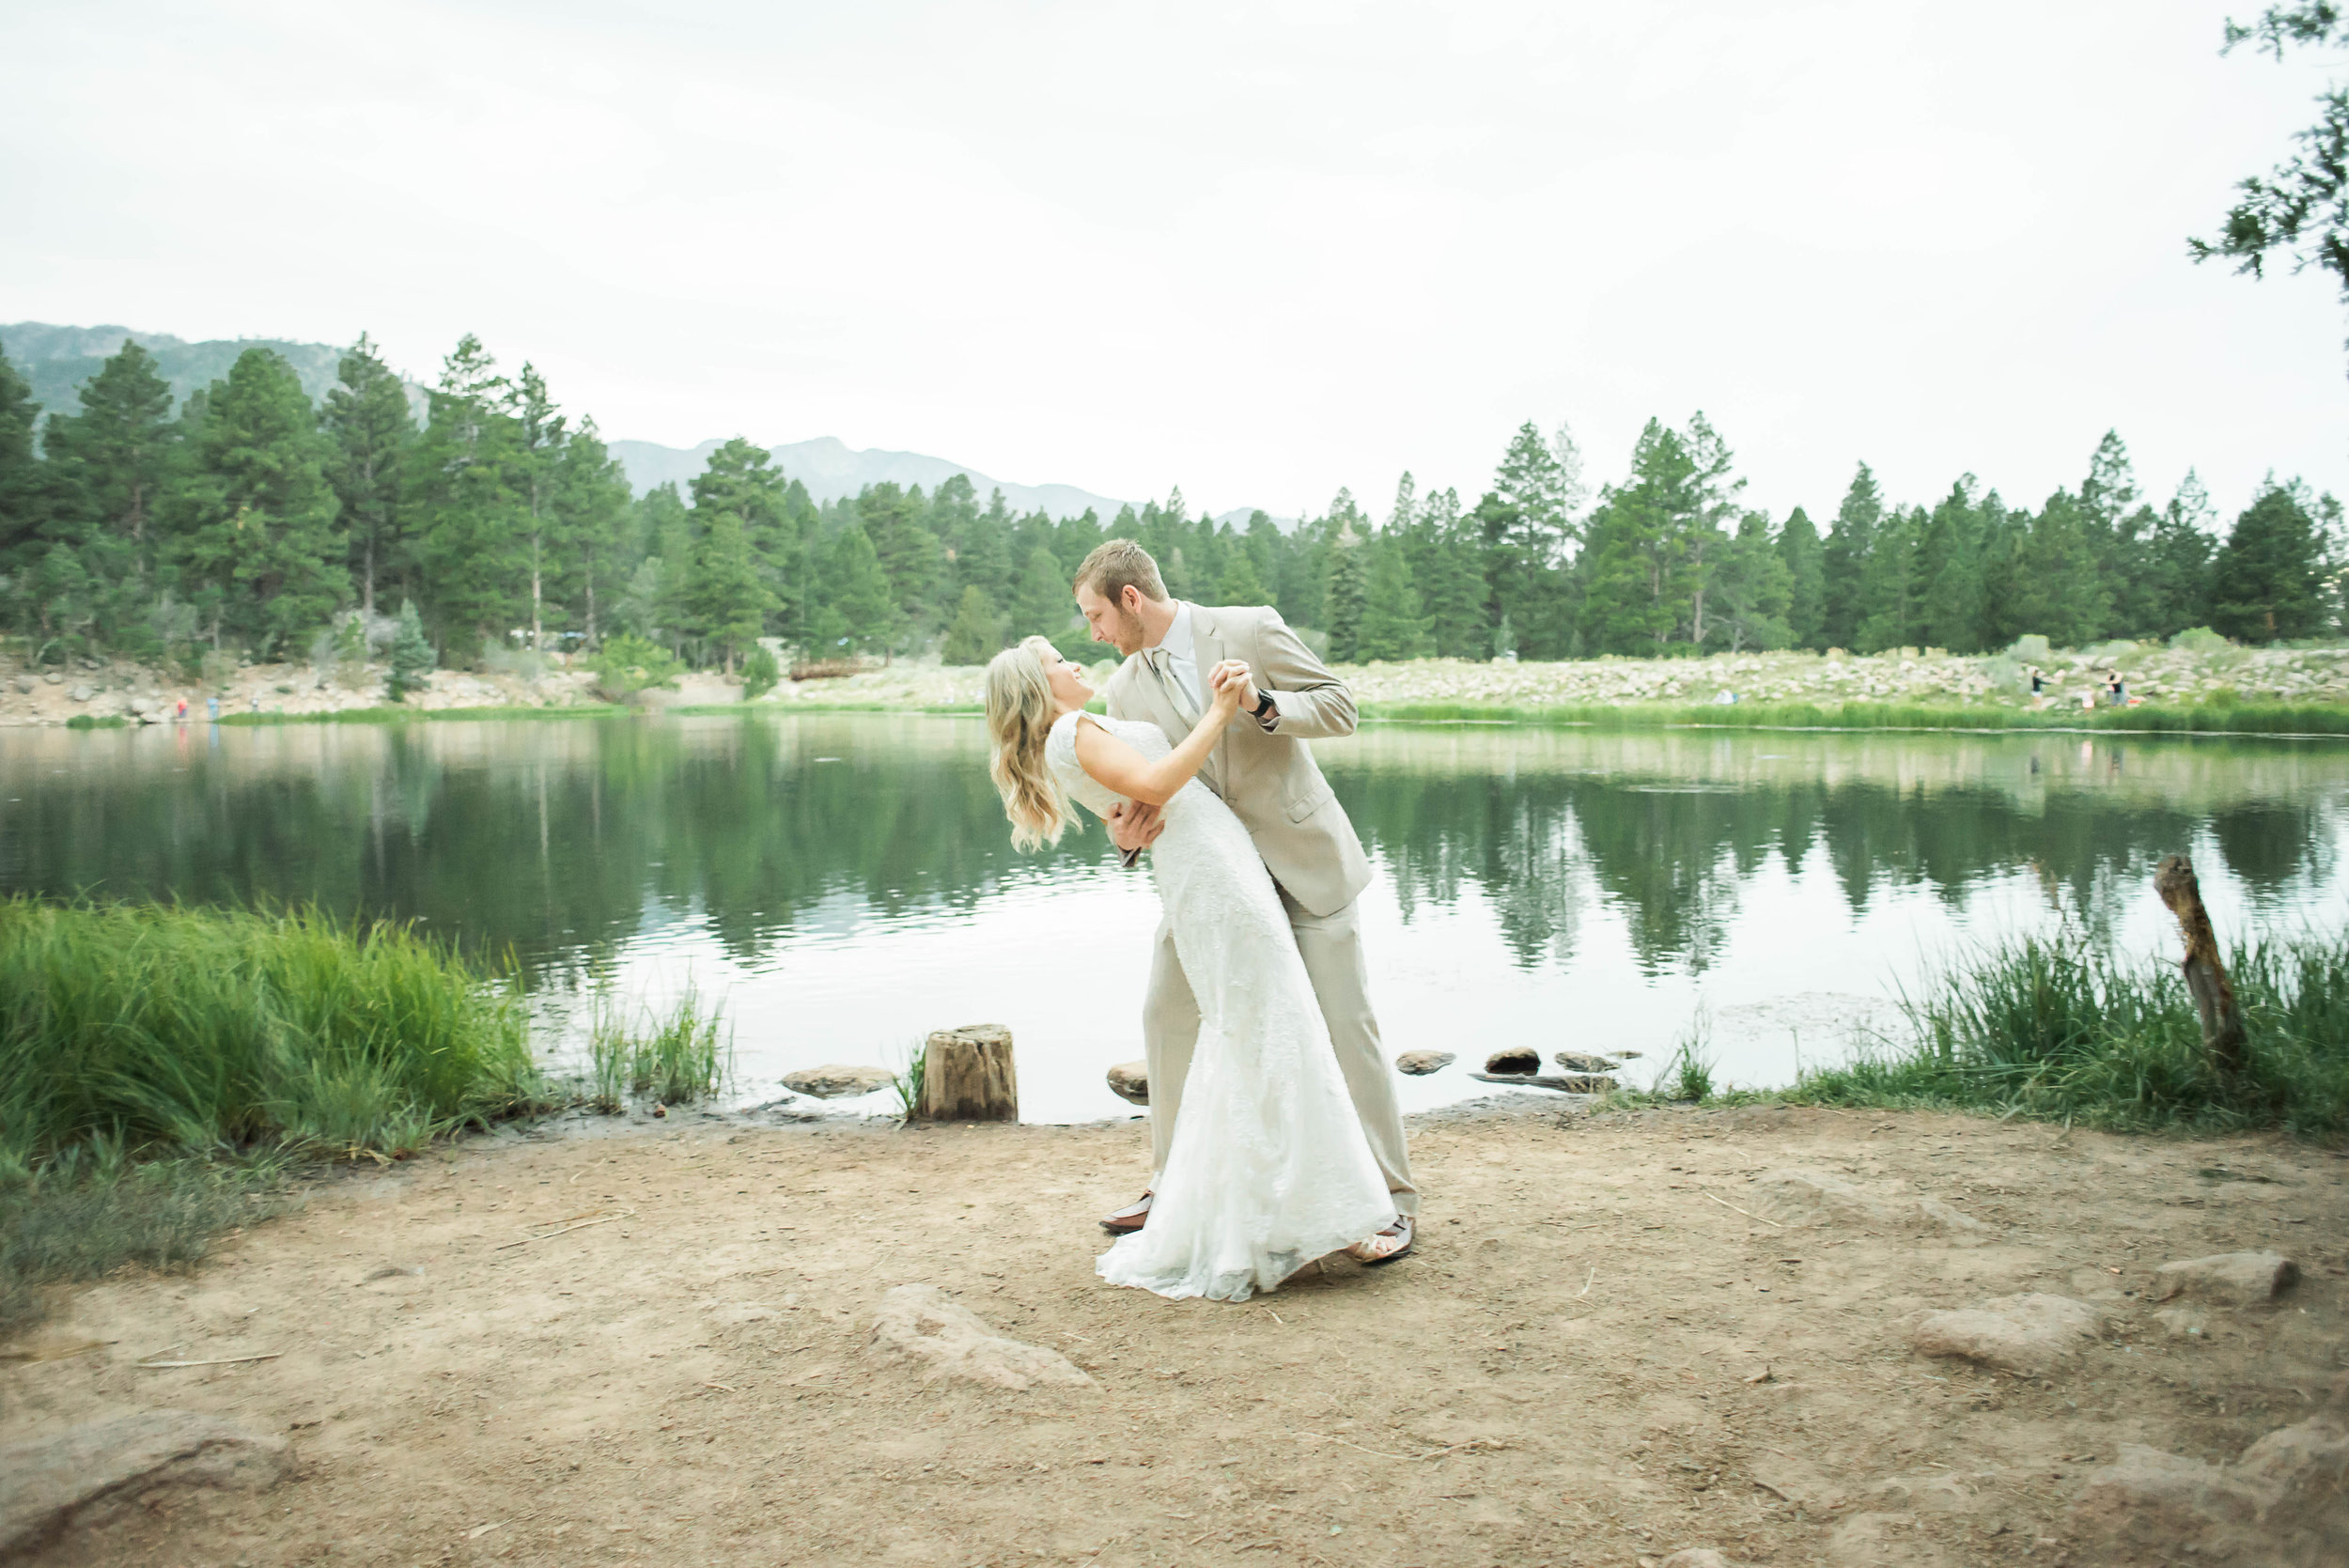 DANIEL+LACI-Sadie_Banks_Photography-94.jpg